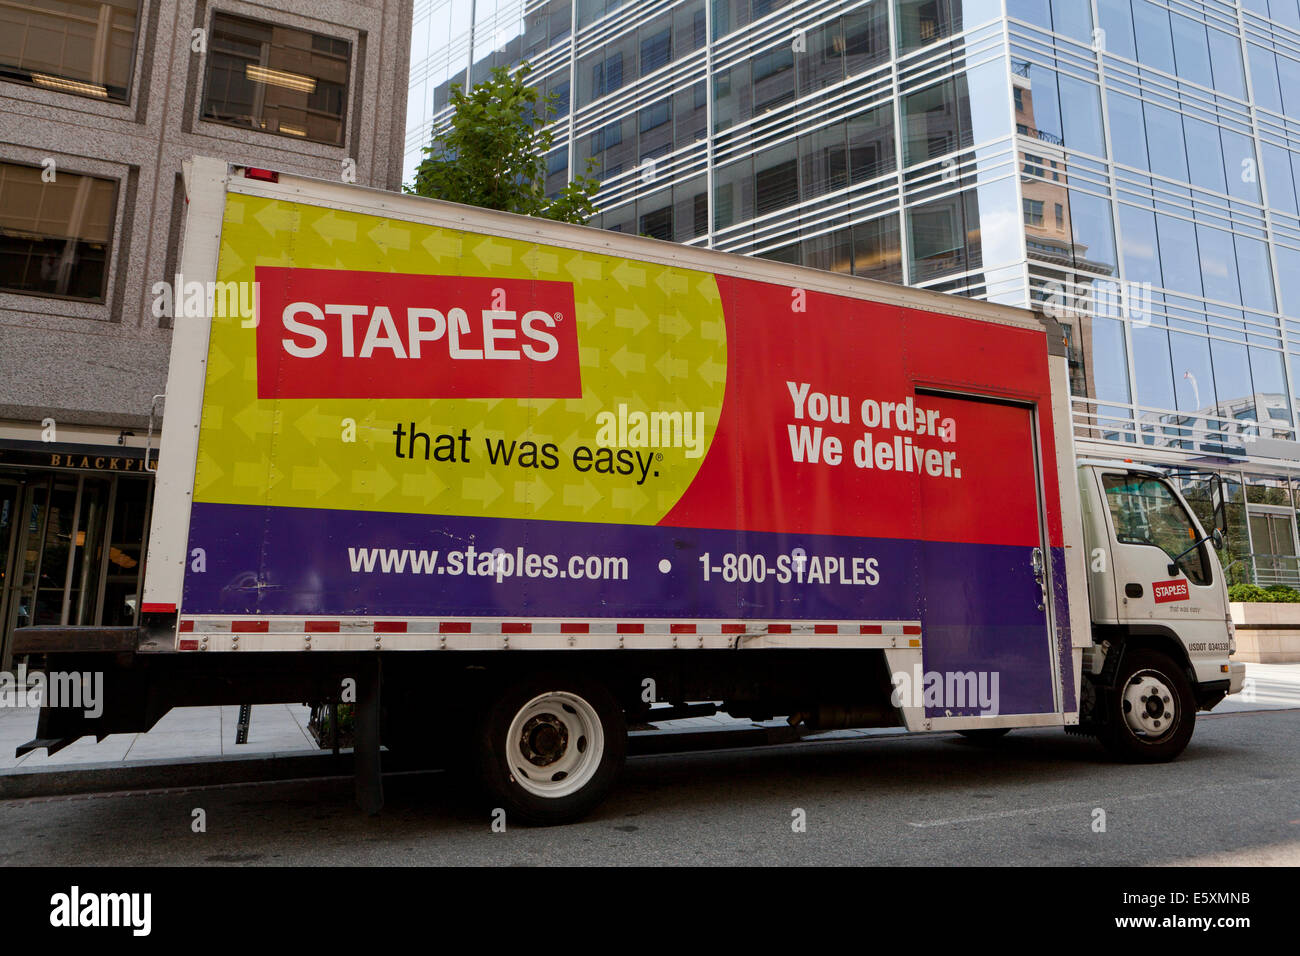 Staples delivery truck - USA - Stock Image